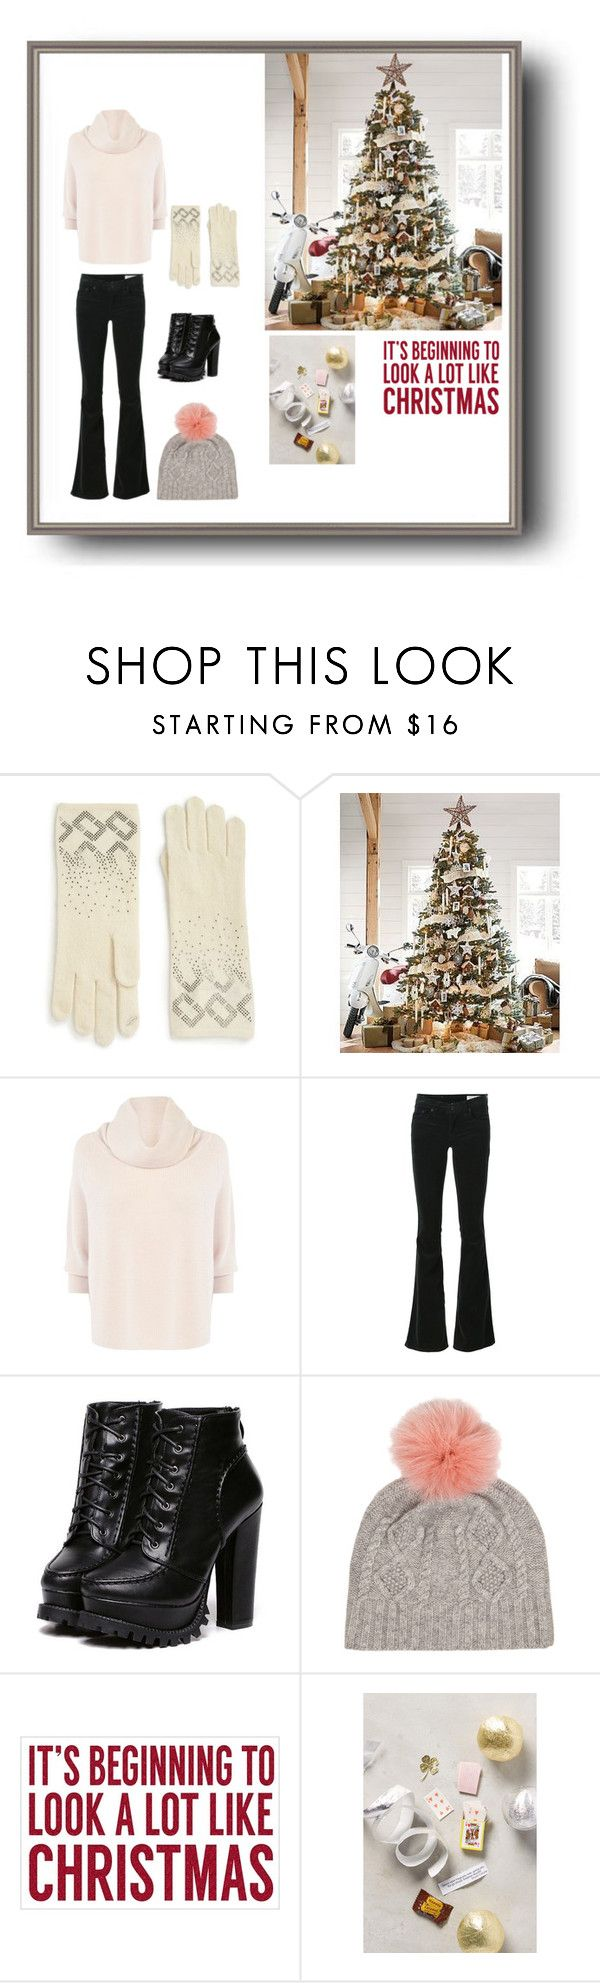 """""""WINTER MUST HAVES"""" by xdarkgothamx ❤ liked on Polyvore featuring Diane Von Furstenberg, Pottery Barn, Karen Millen, rag & bone, Sixtrees, Winter, Boots, snow, cold and winter2015"""